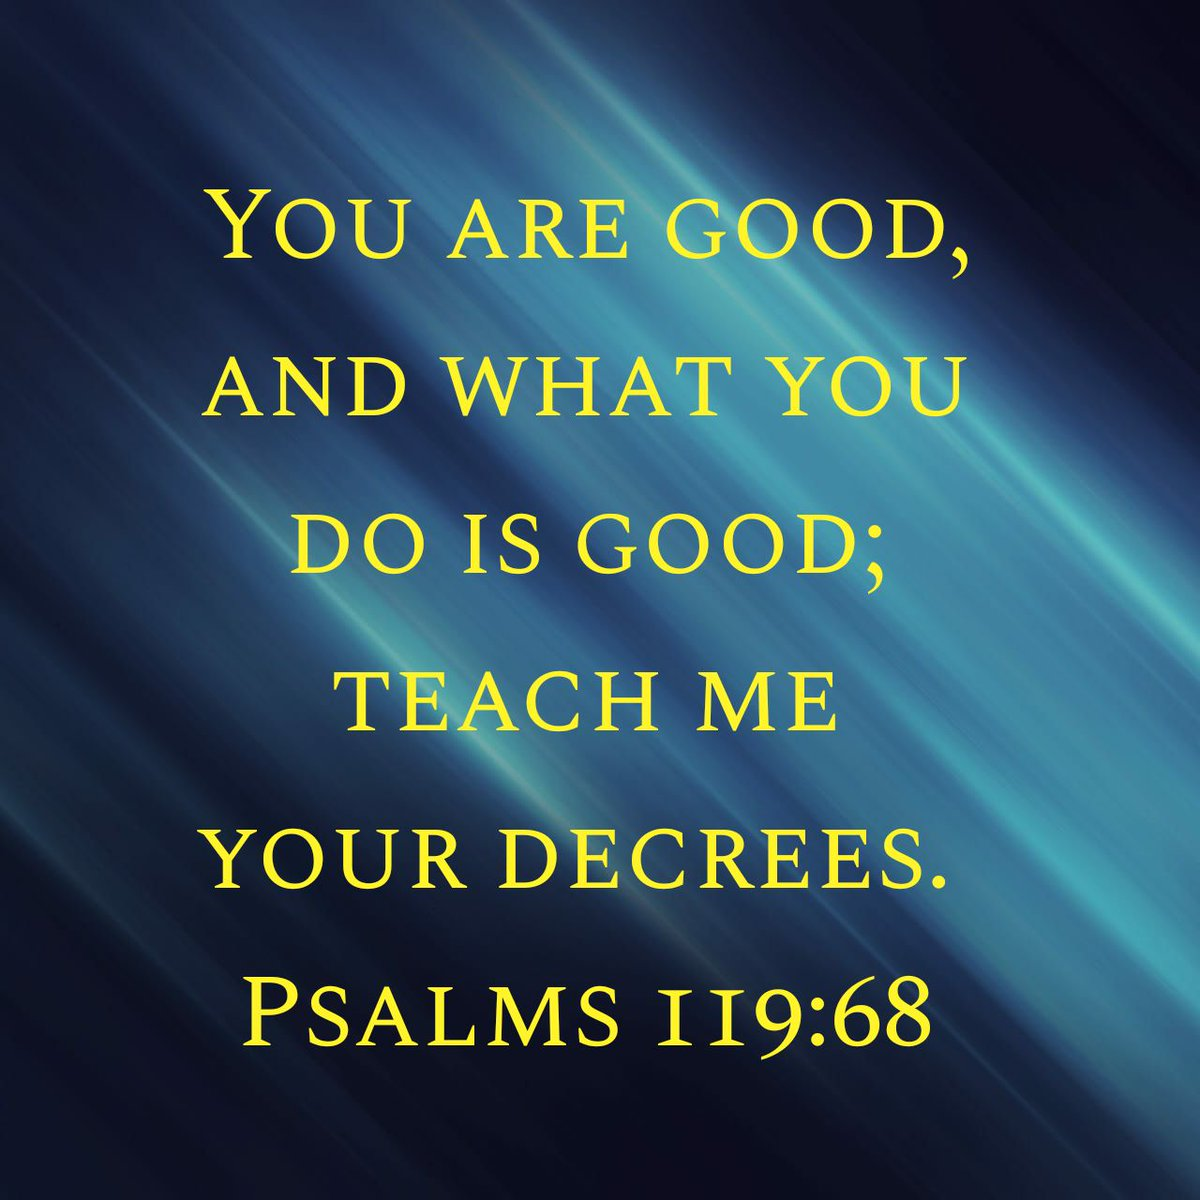 We learn what is good from God, not the world  or man.  #SundayMorning  #scripture  #TrumpTreason  #TedCoup  #FranklinGraham  #pence  #bible  #believeit  #theCursebook